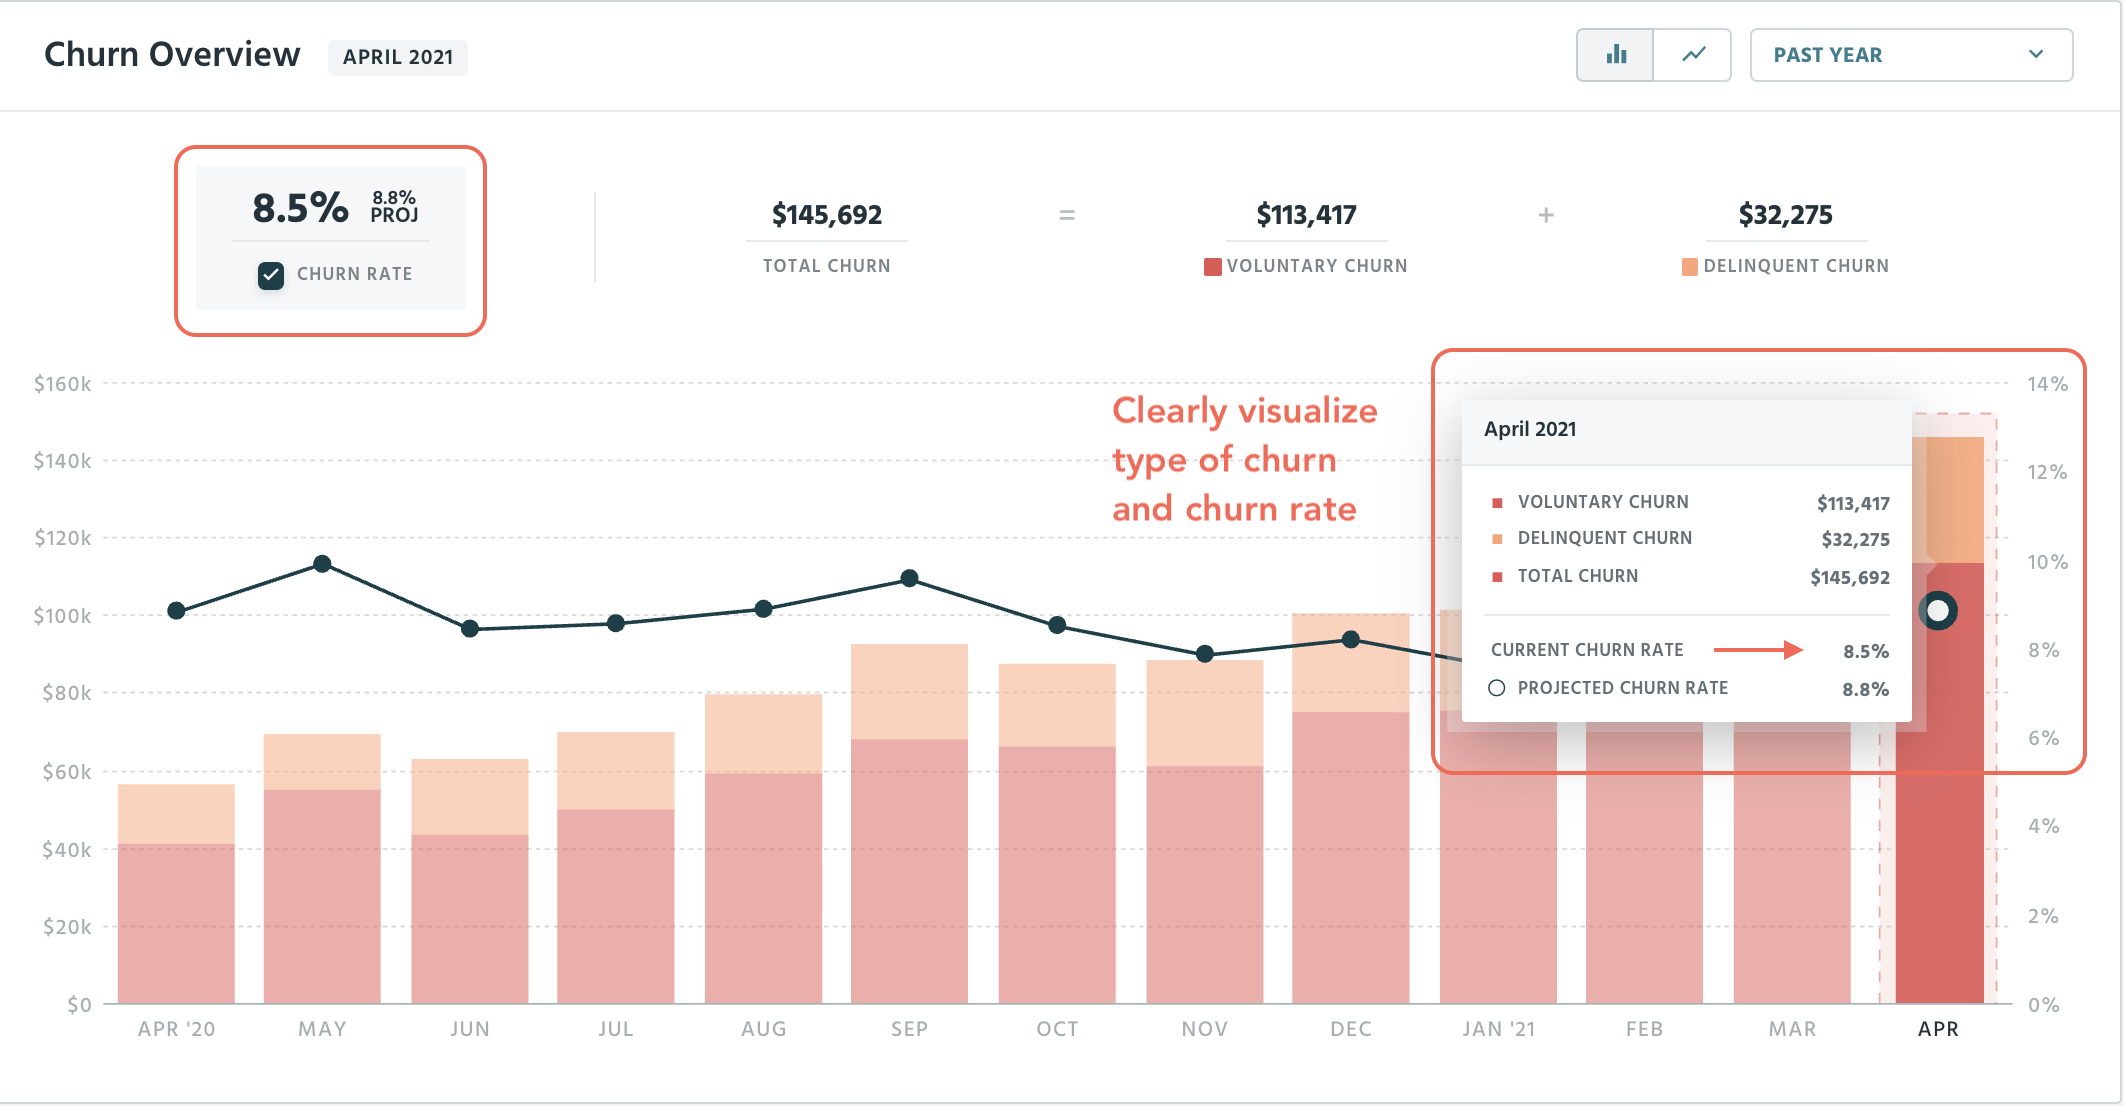 Churn Overview